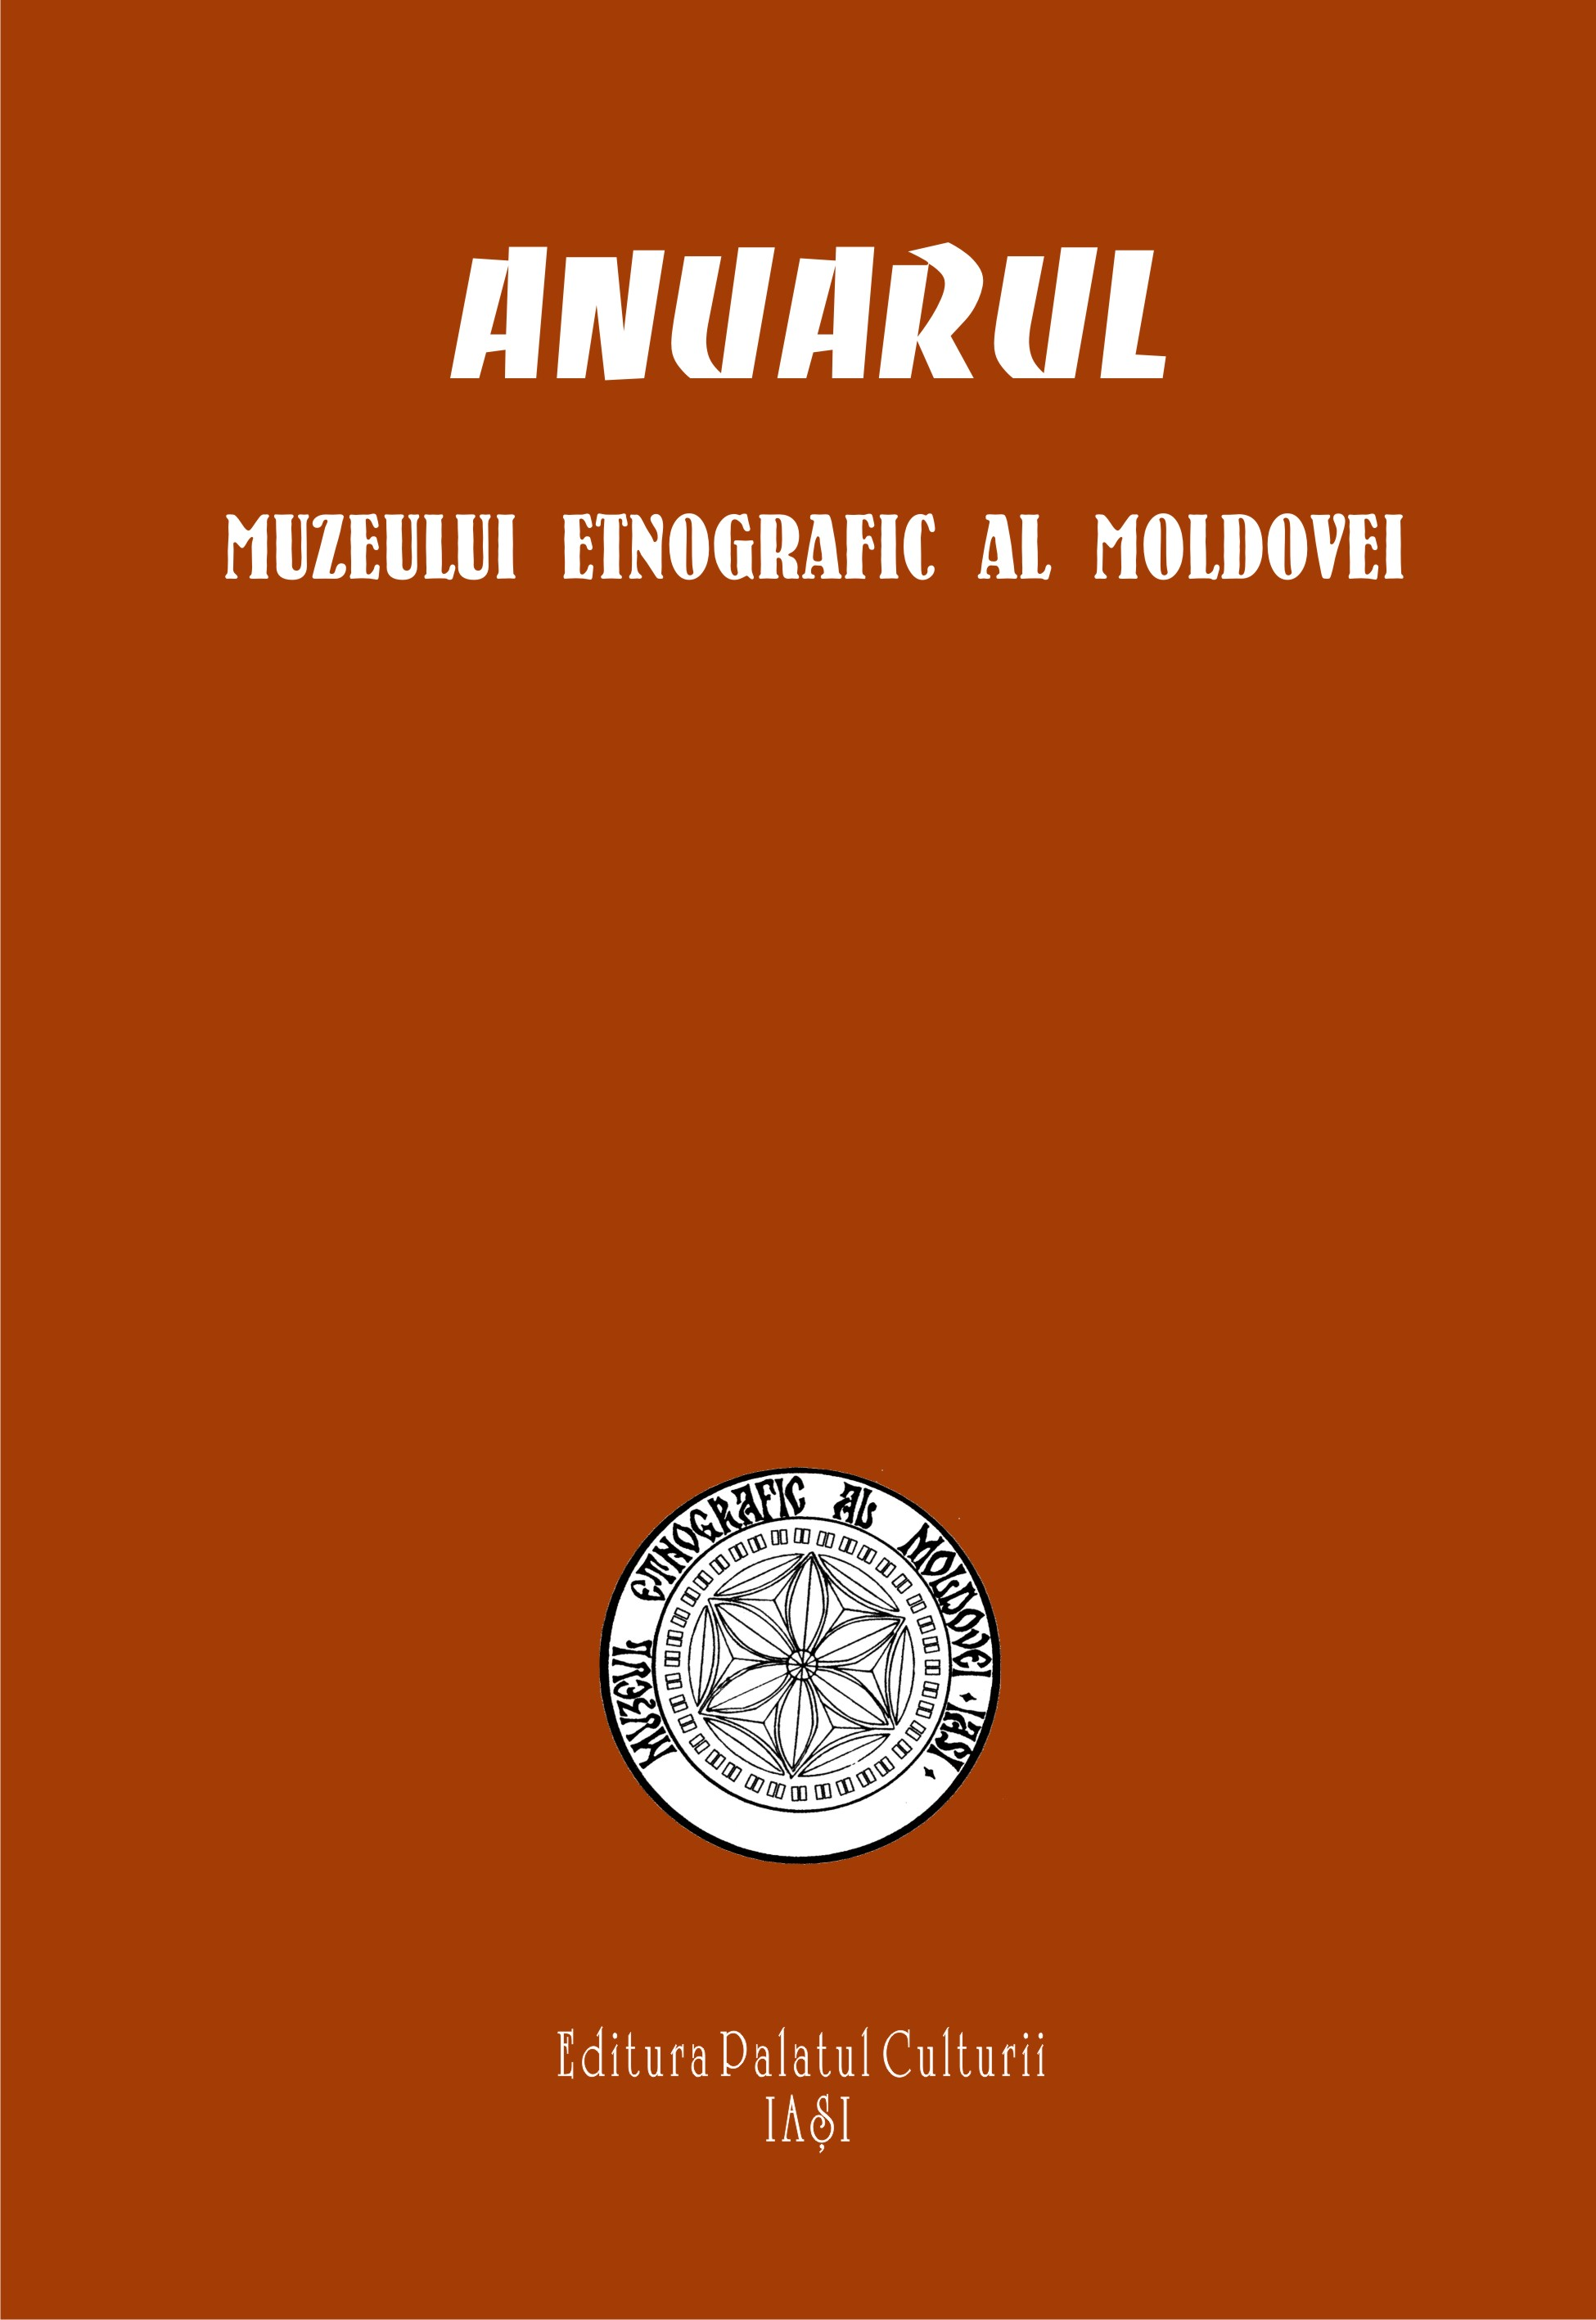 The Yearly Review of the Ethnographic Museum of Moldavia Cover Image